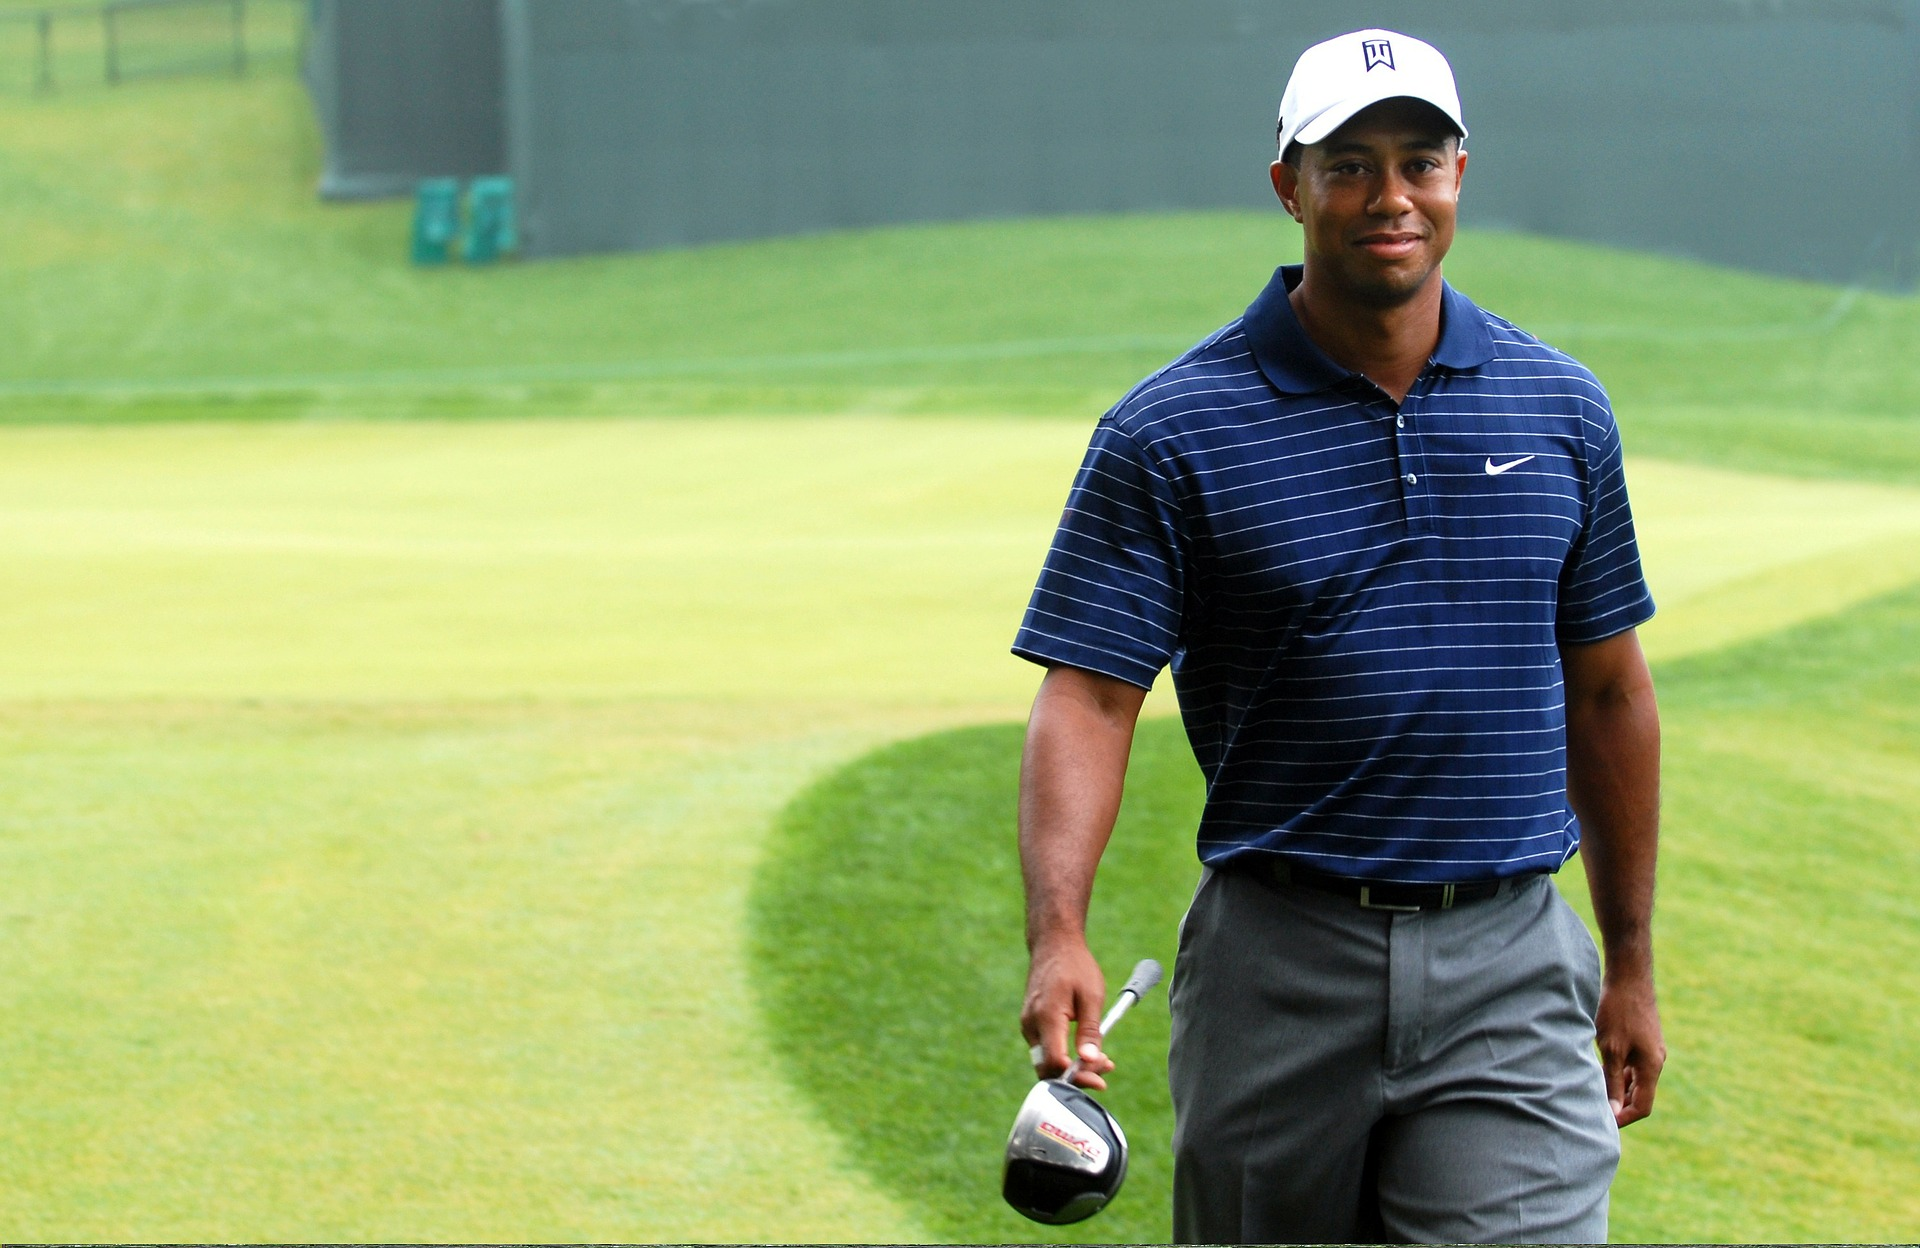 Tiger Woods Is Gradually Recovering, Shares Pictures With Crutches